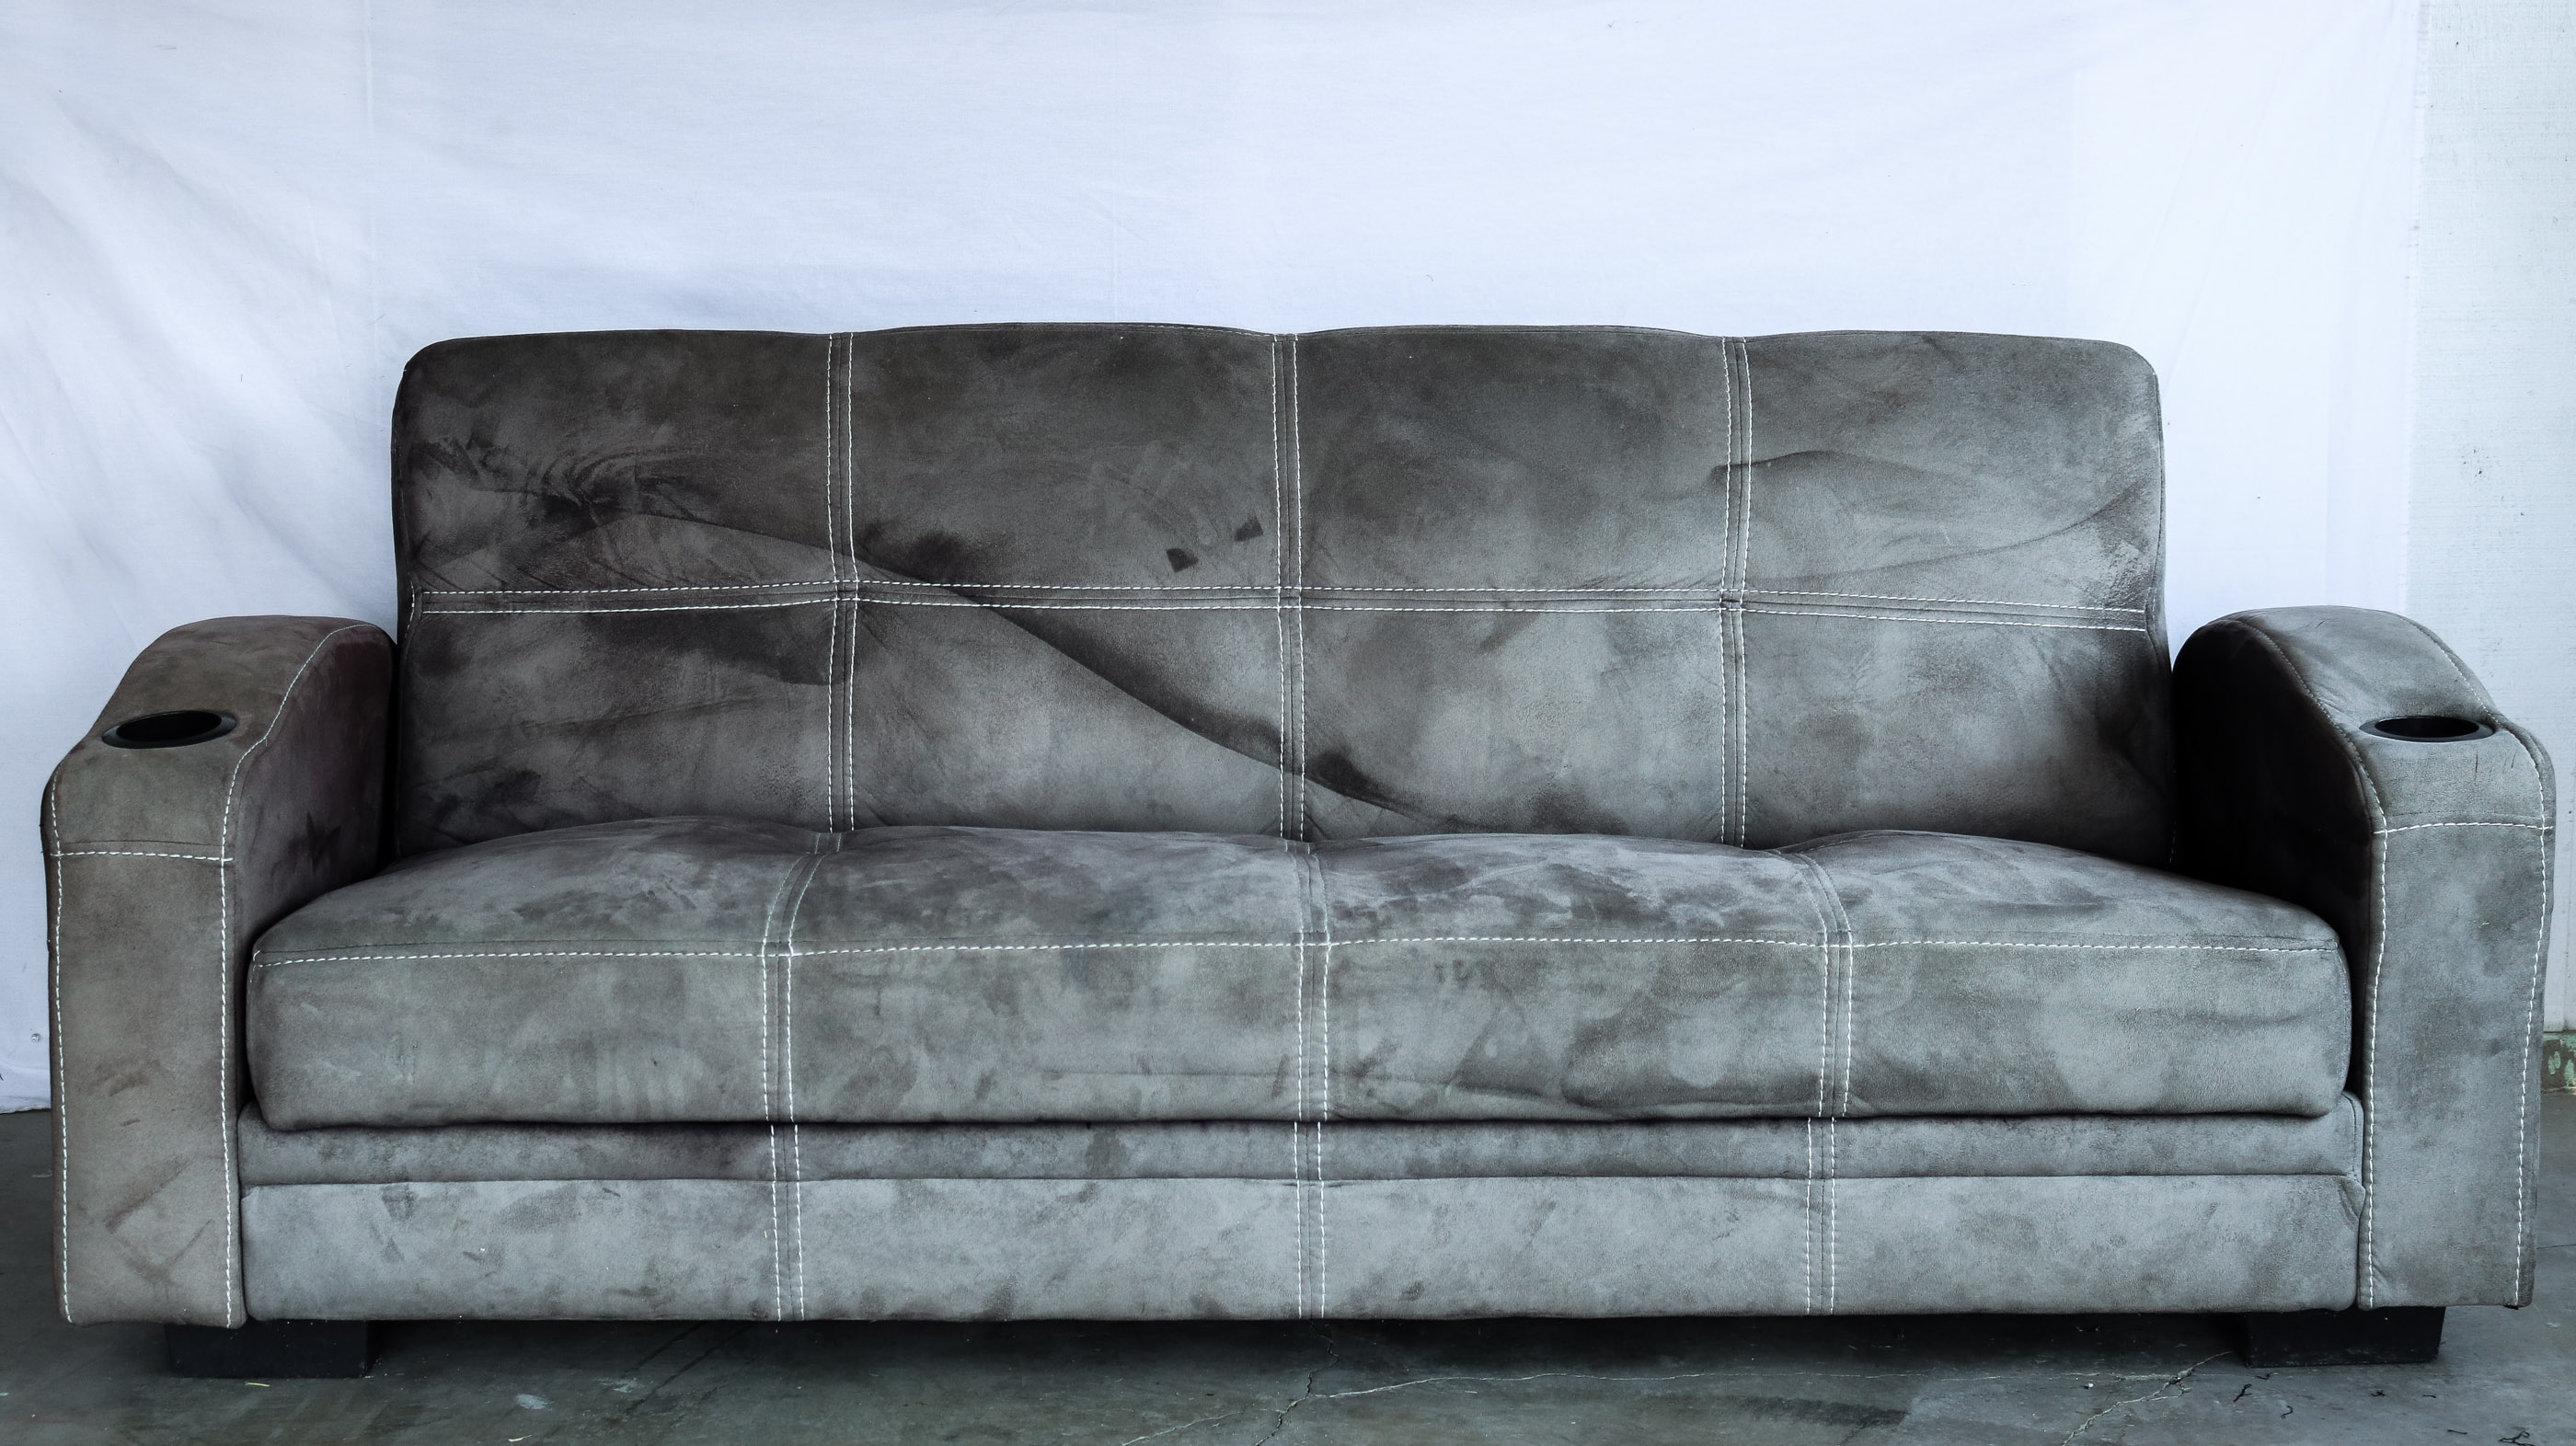 How to paint your microfiber couch to look like real leather ...